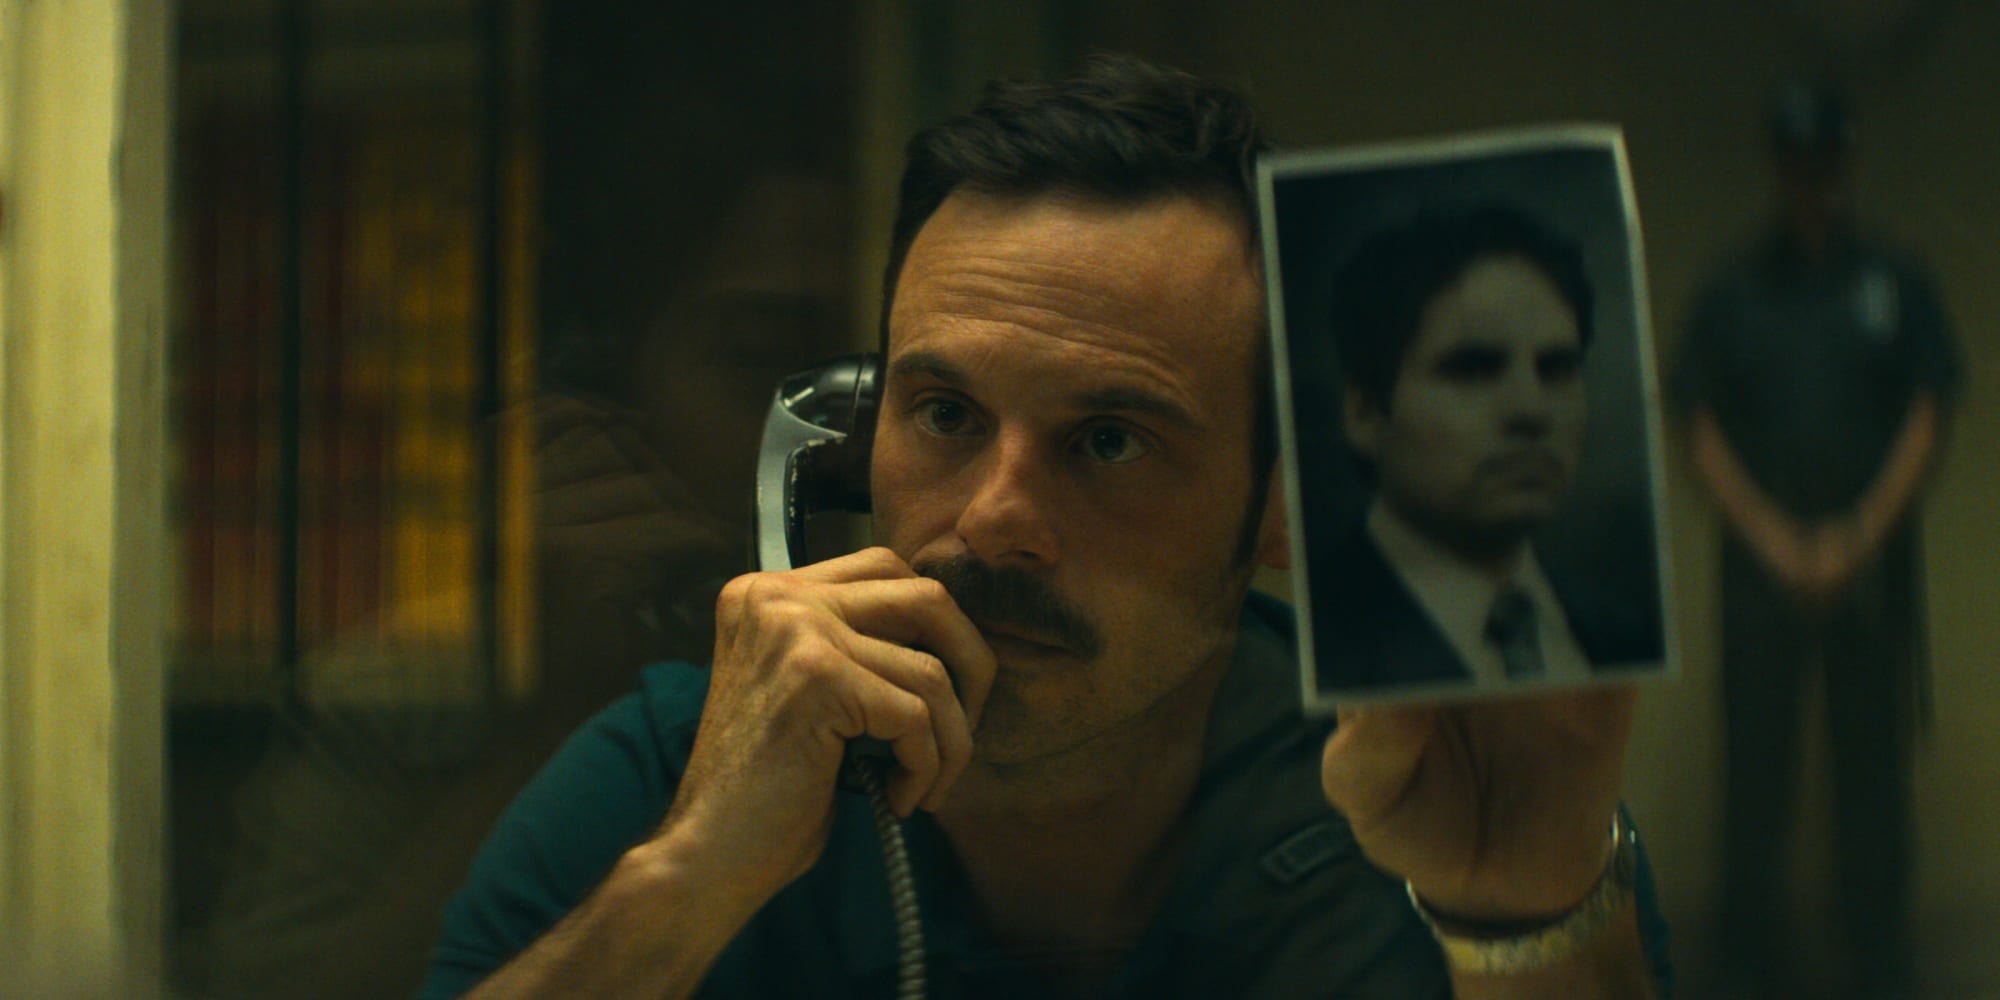 'Narcos: Mexico' Season 3: Why should fans be excited?